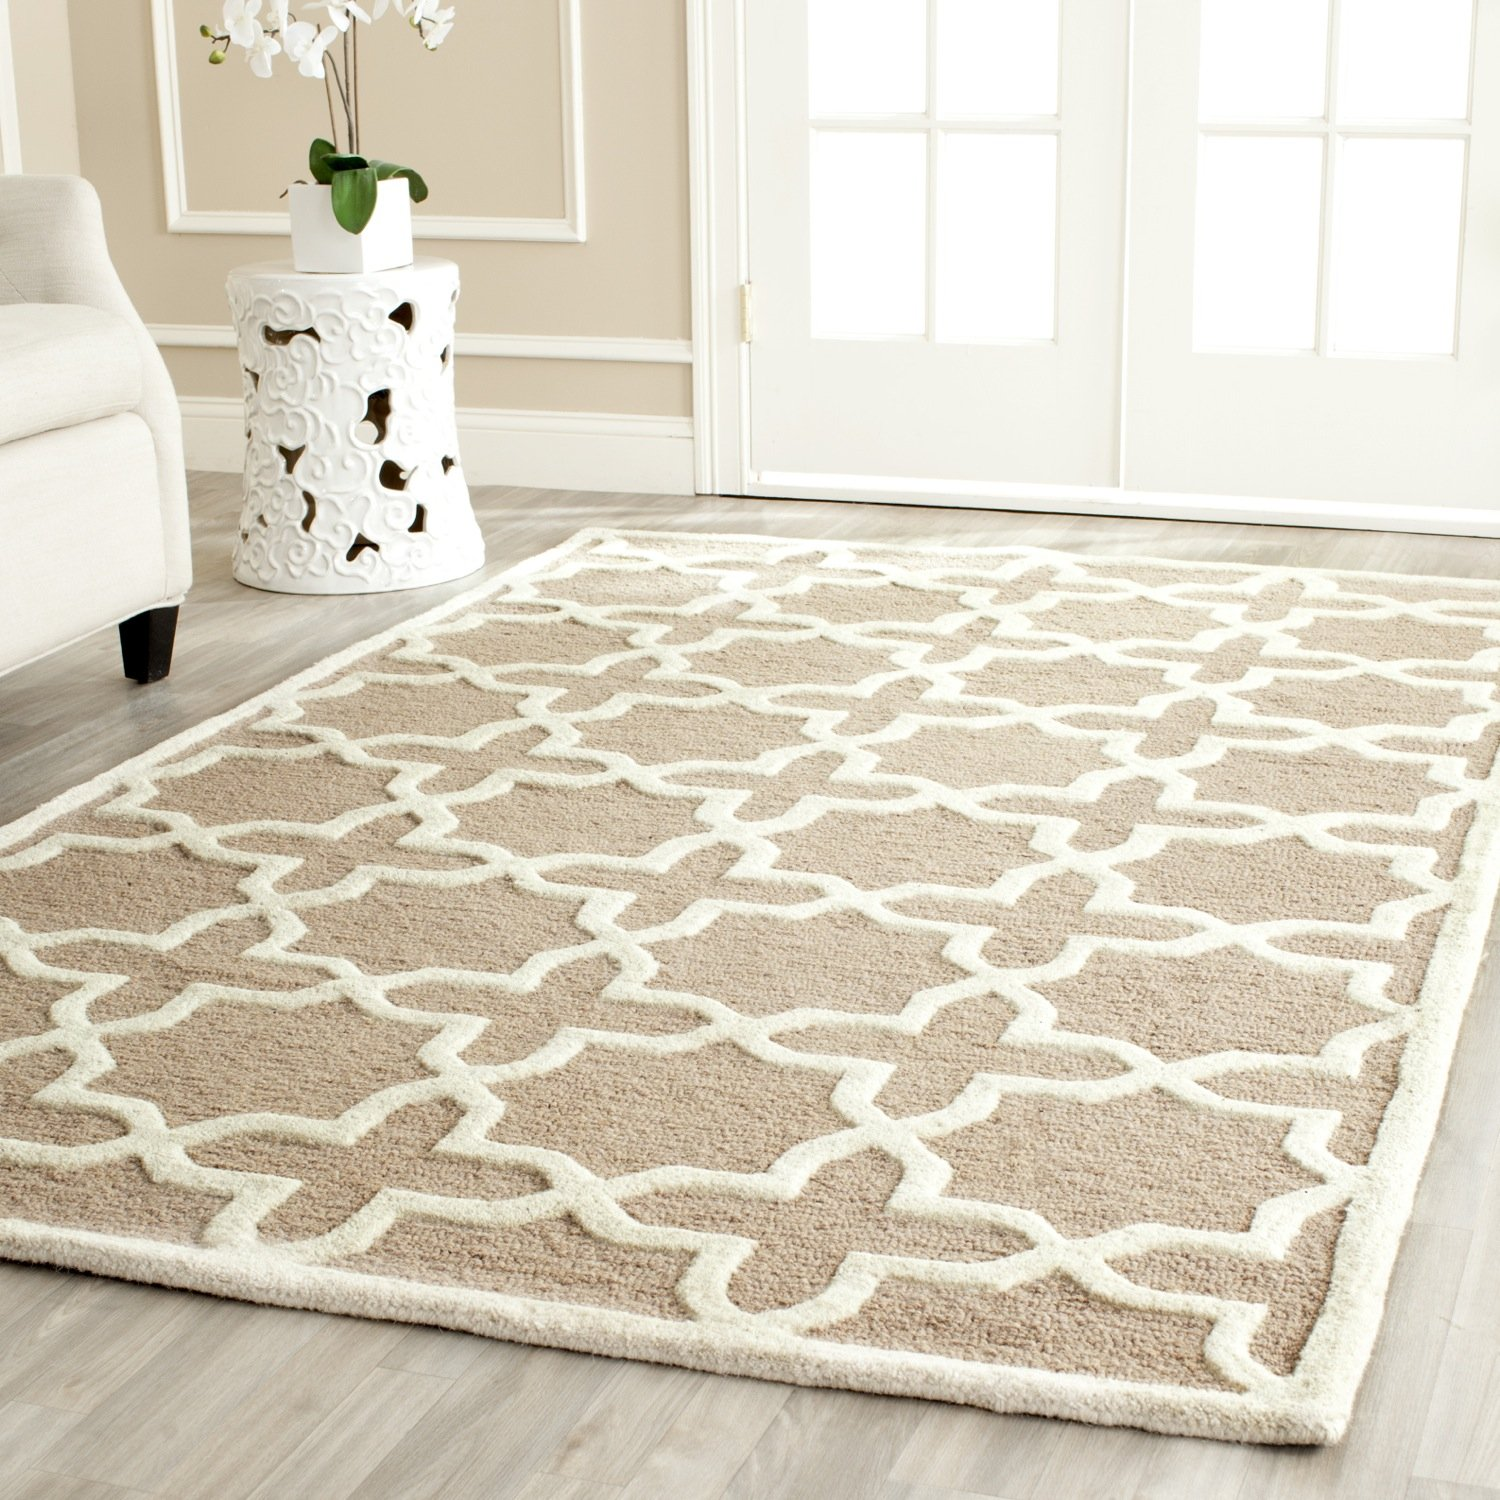 Amazon.com: Safavieh Cambridge Collection CAM125J Handcrafted Moroccan  Geometric Beige And Ivory Premium Wool Area Rug (6u0027 X 9u0027): Kitchen U0026 Dining